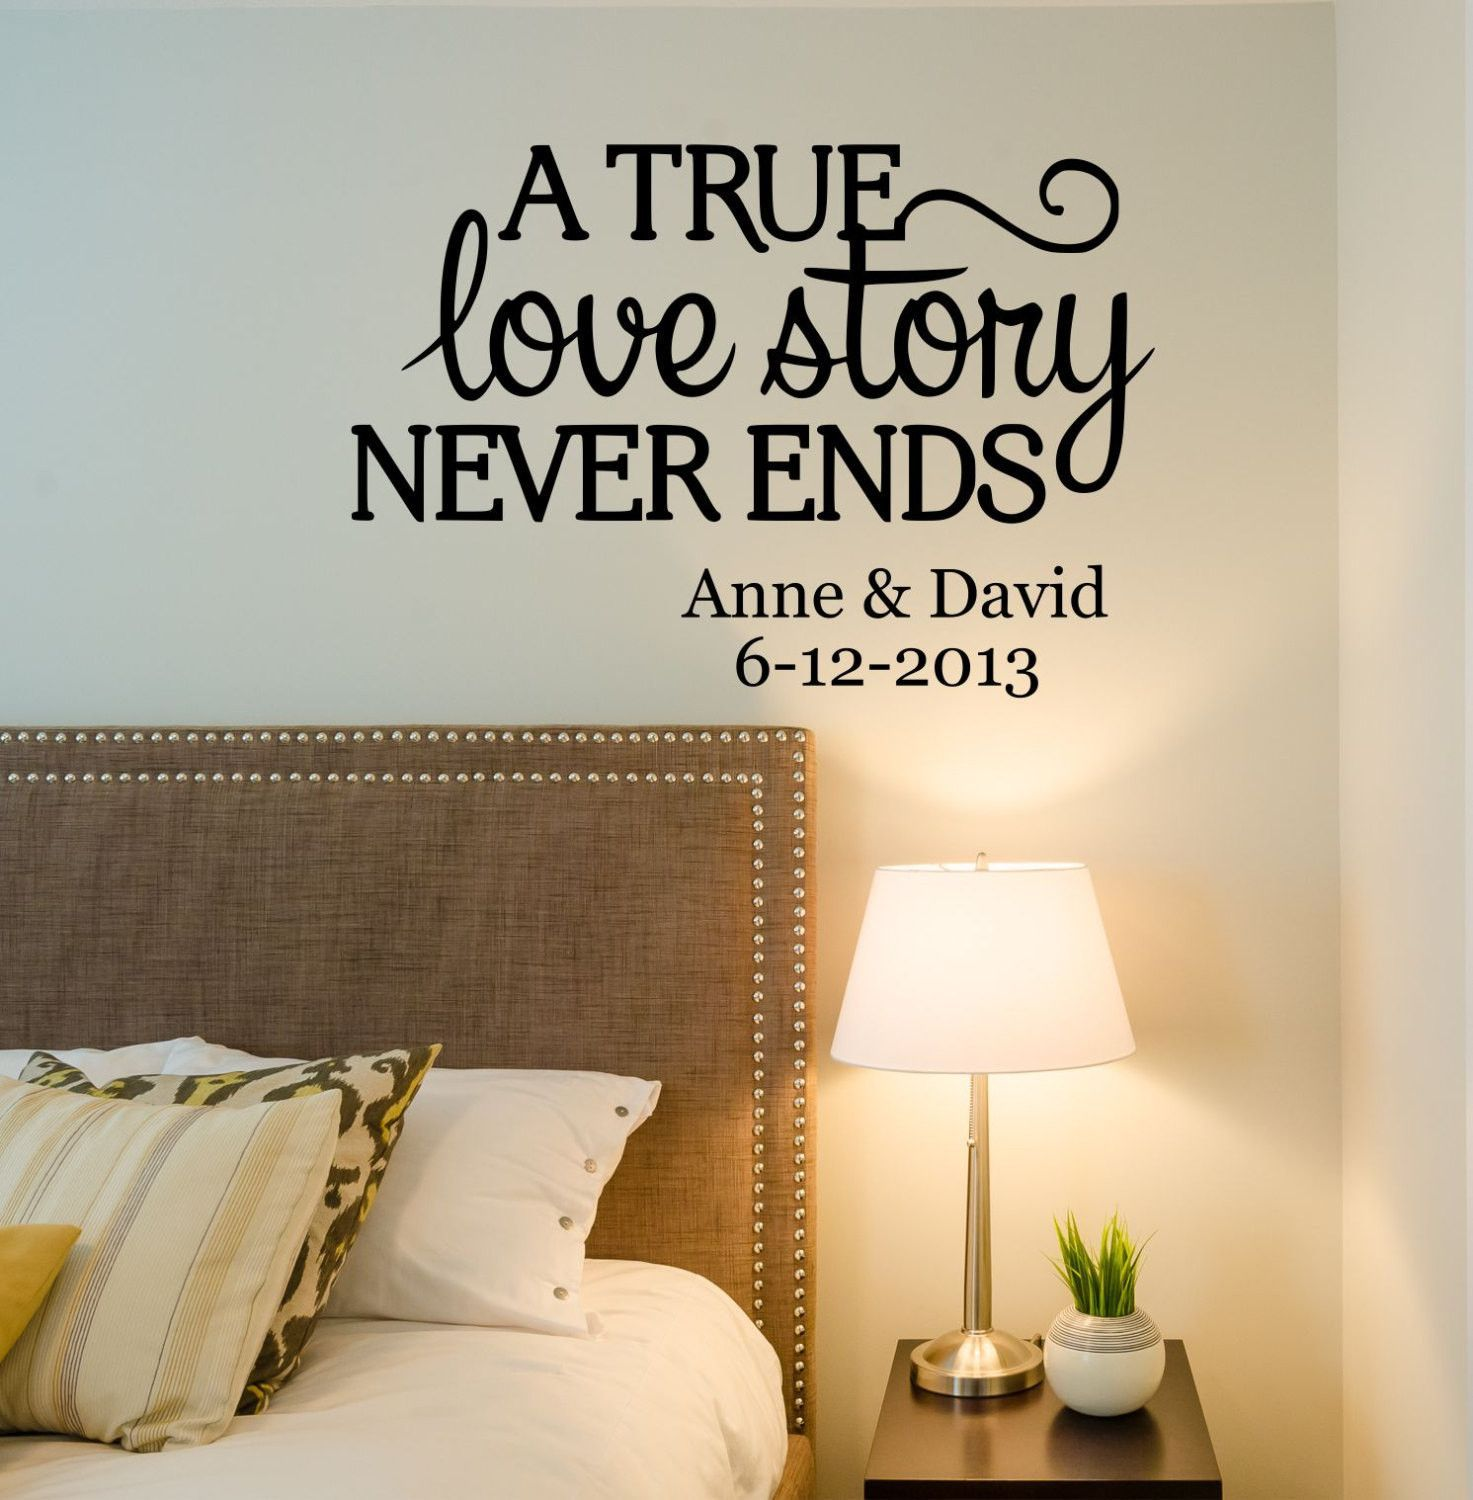 Love Story Quote Wall Decal By Decor Designs Decals Love Story - Custom vinyl wall decals sayings for living room